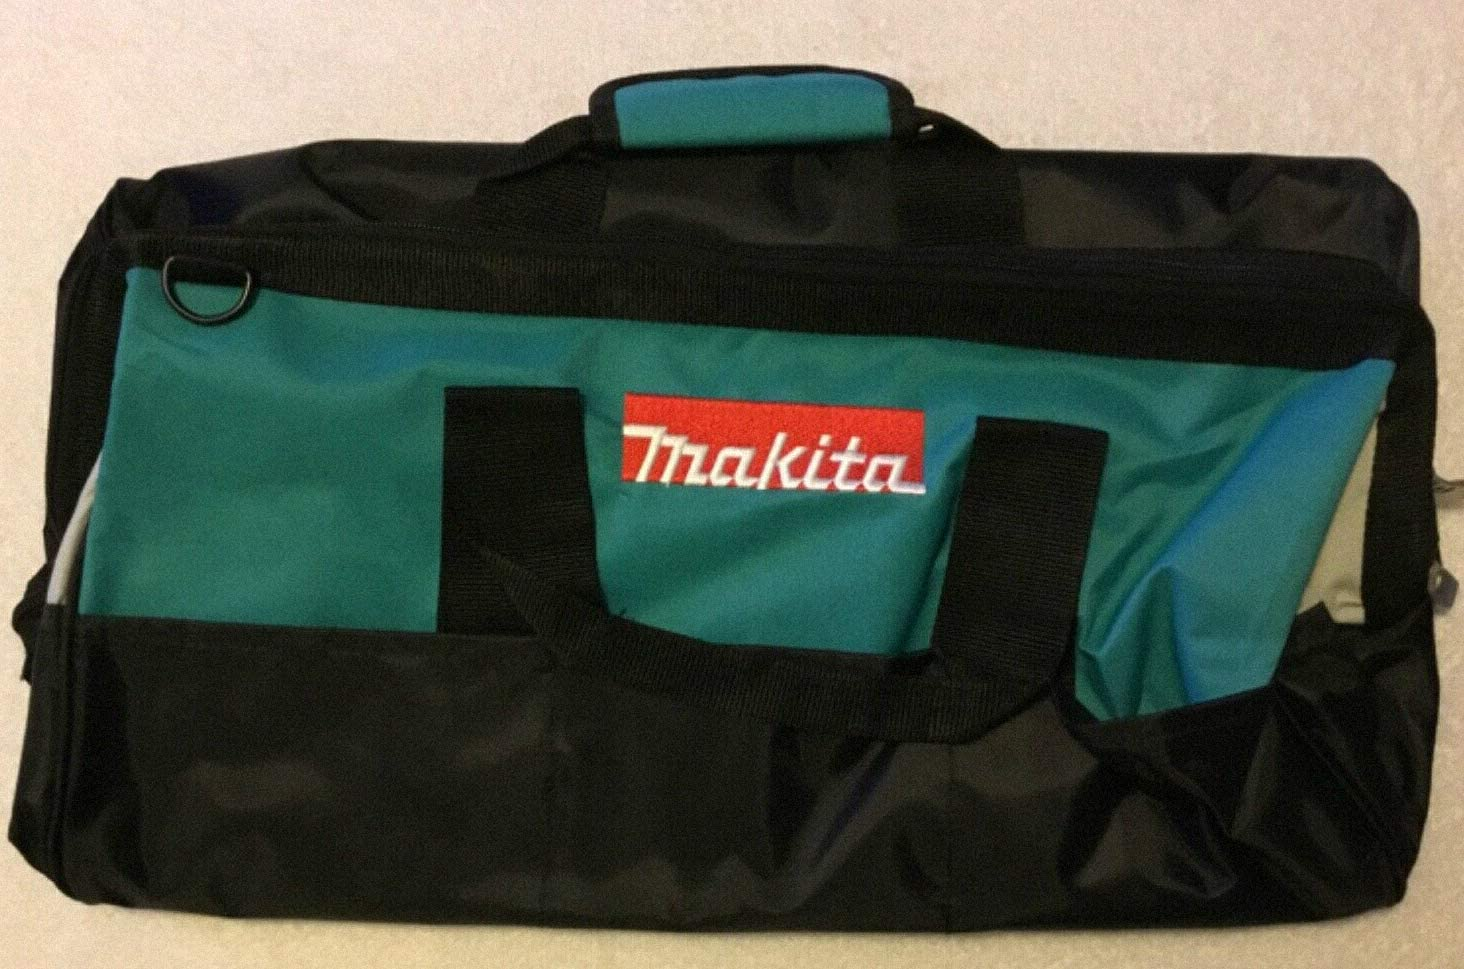 Ma-kita Heavy Free shipping New Duty Contractors Tool Bag Rapid rise Too 21-Inch